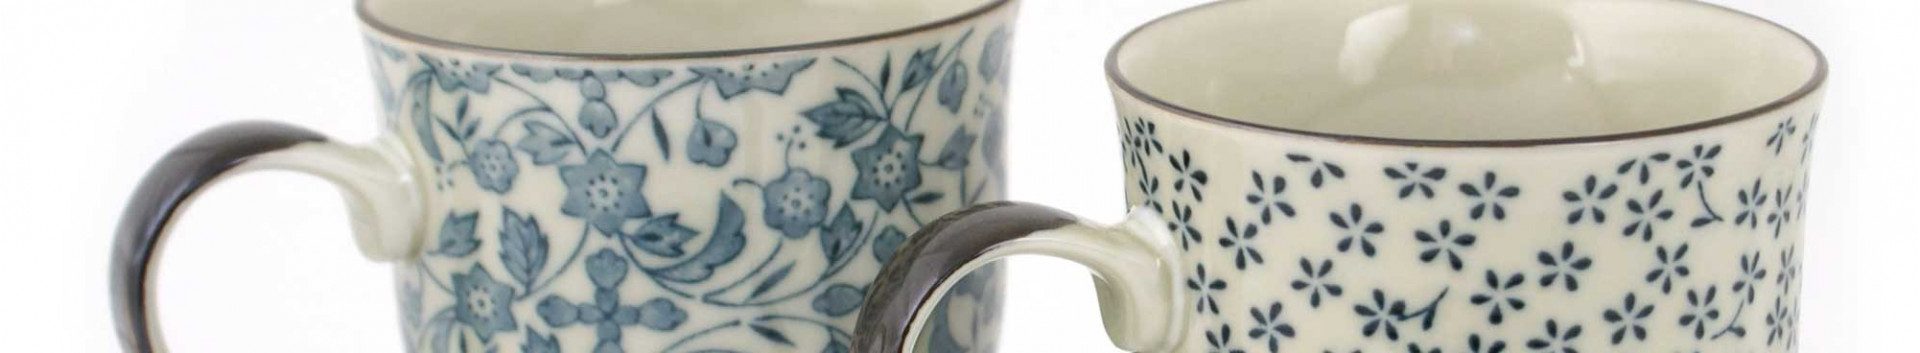 japanese cup with handle